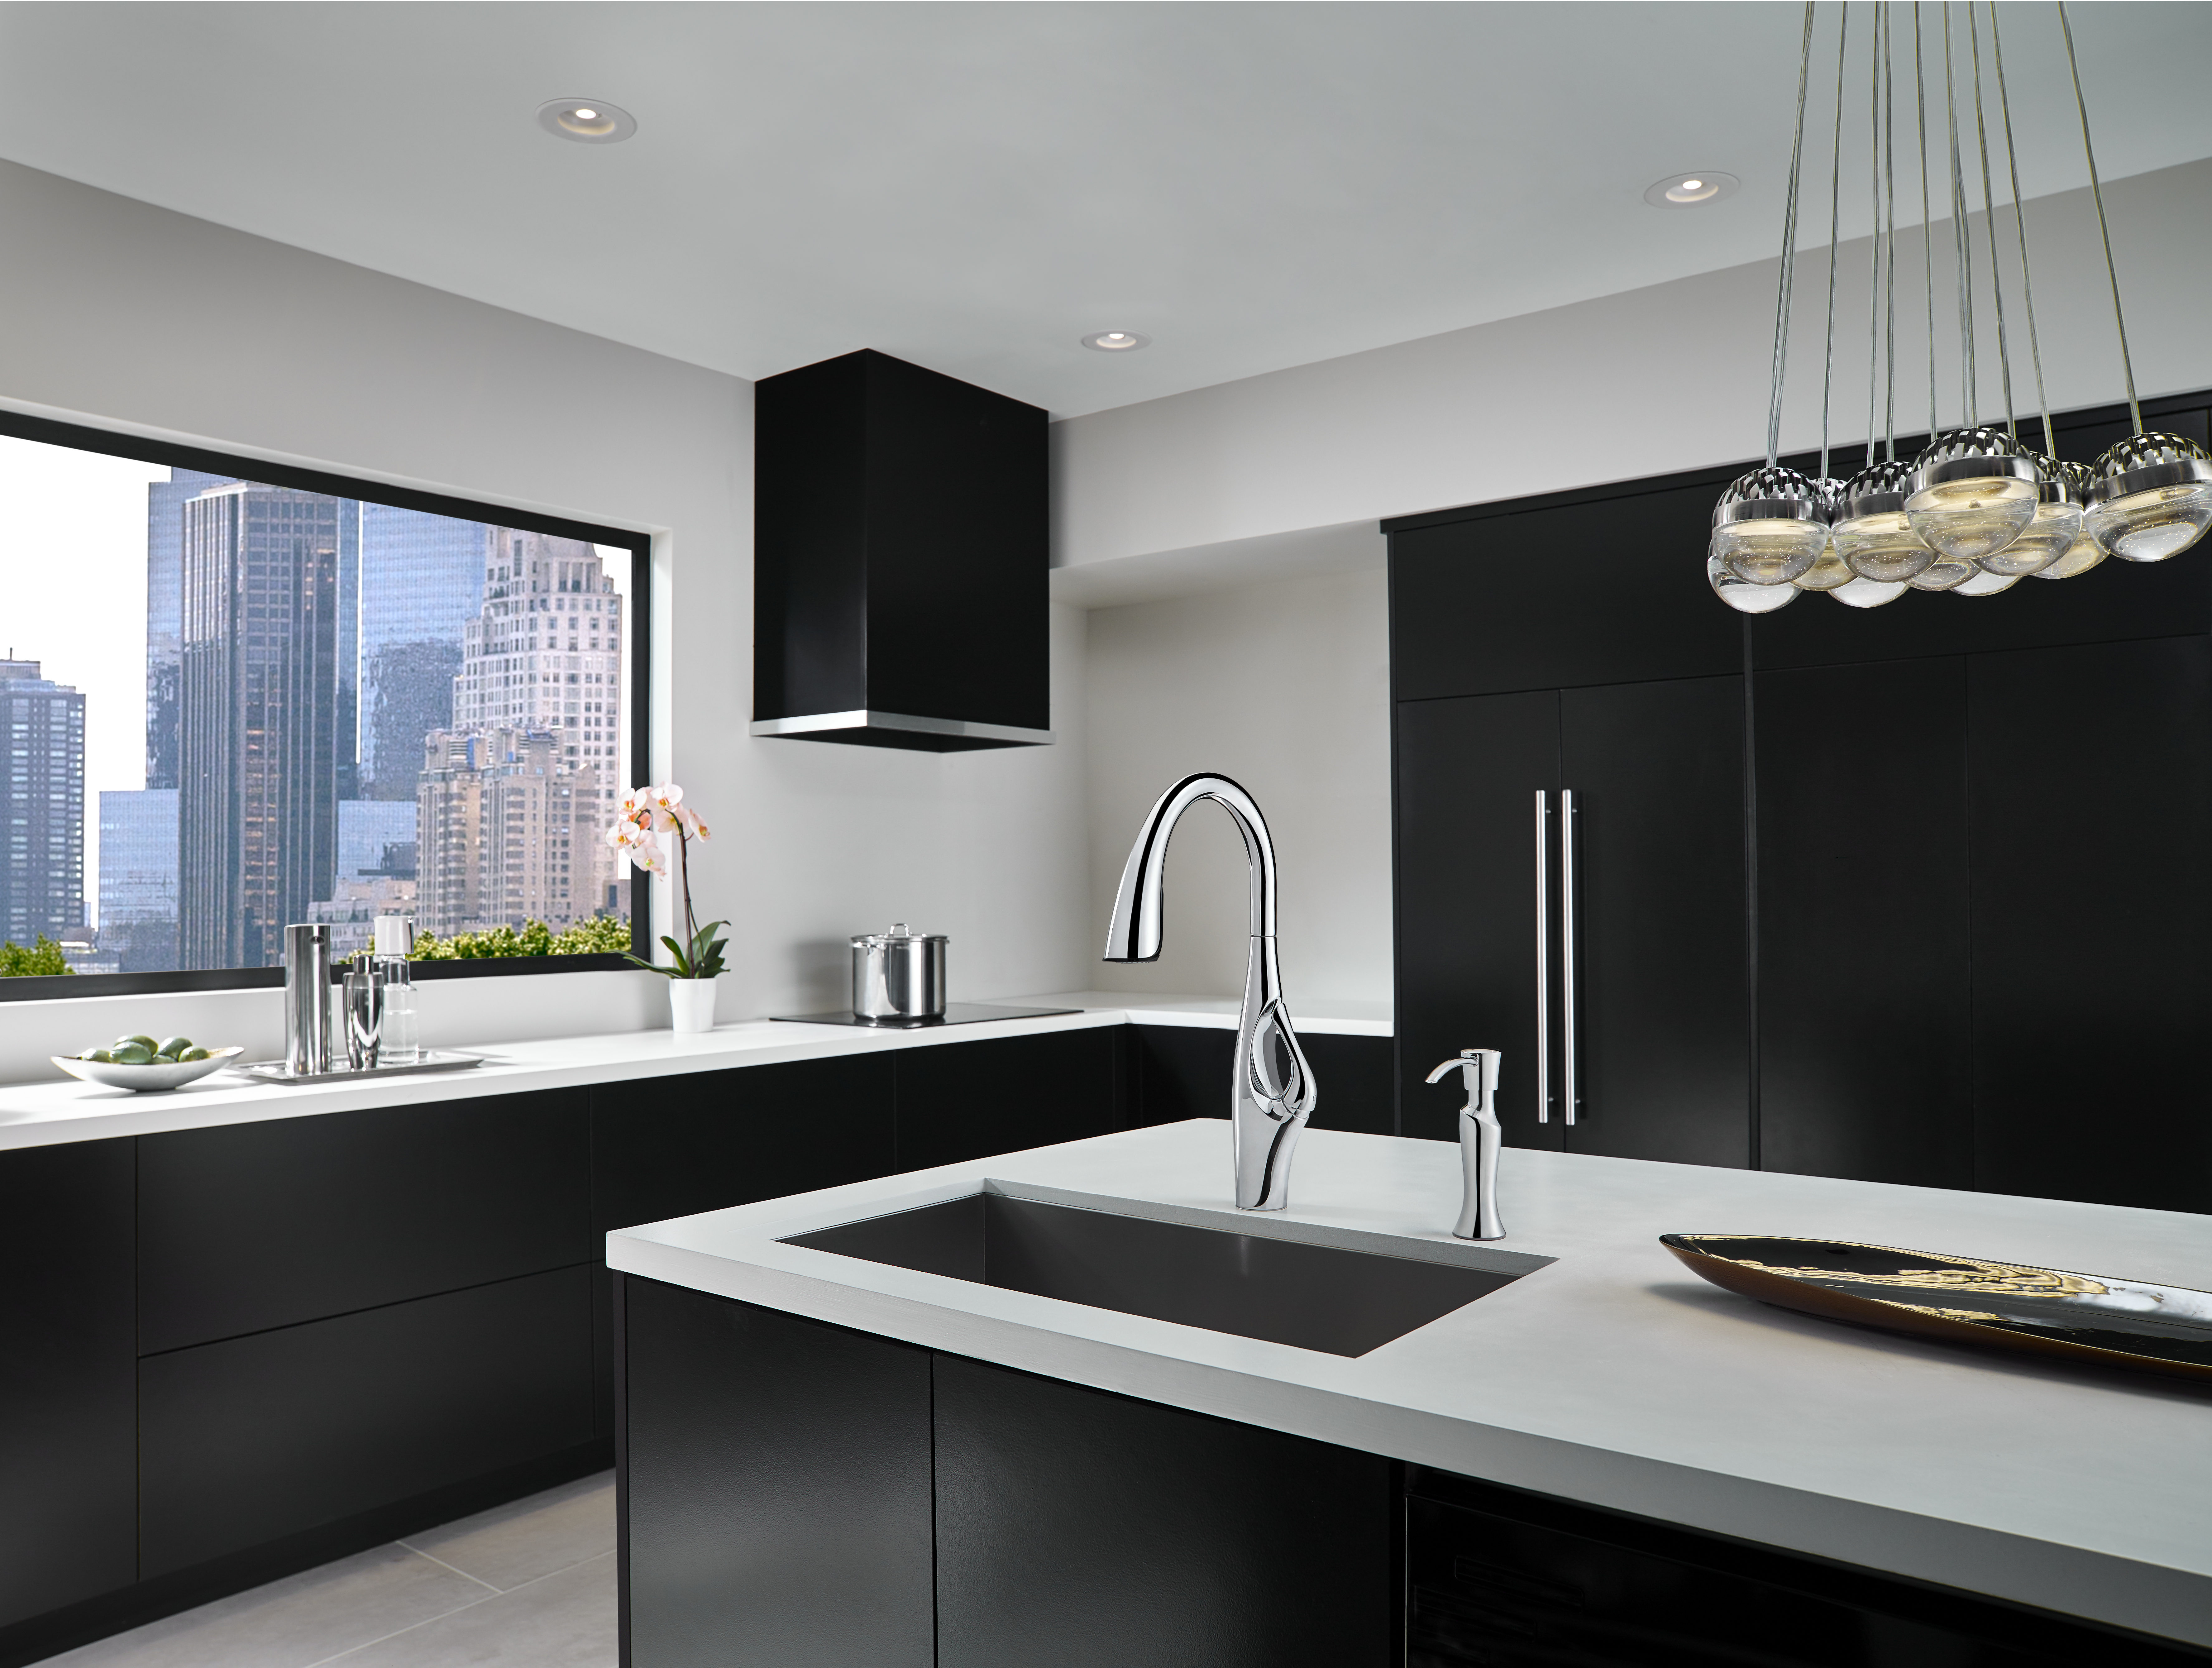 Artistic Pfister® Faucet with Unique Handle Integration Adds Stand ...